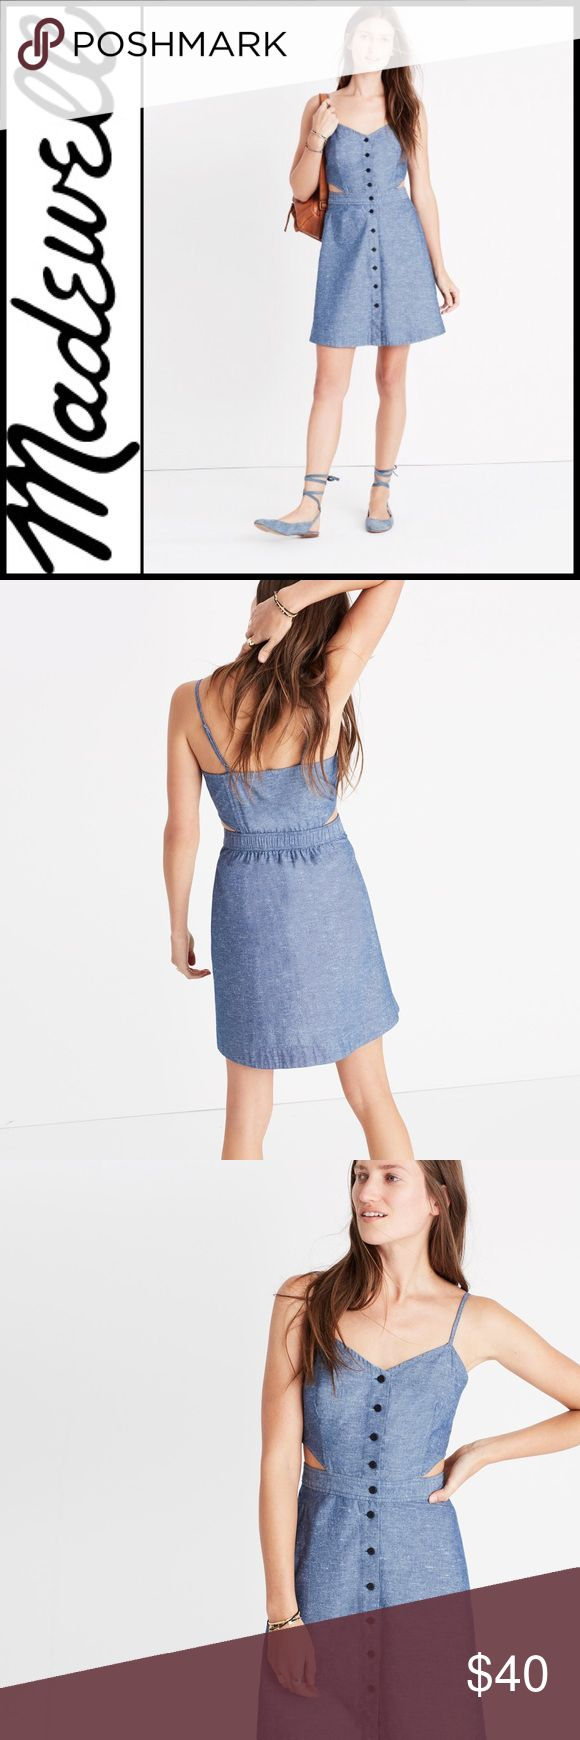 """[Madewell] Chambray Cutout Mini Dress Size 10 This New with tags pretty cami dress with side cut outs and buttons all the way down the front. Made of leightweight chambray , this mini dress is perfect for your warm weather party lineup. Falls 26 1/8"""" from high point of shoulder   100% cotton  Machine wash  Measurments  Bust 17""""  Length 26""""  Width from hem 25"""" Madewell Dresses Mini"""